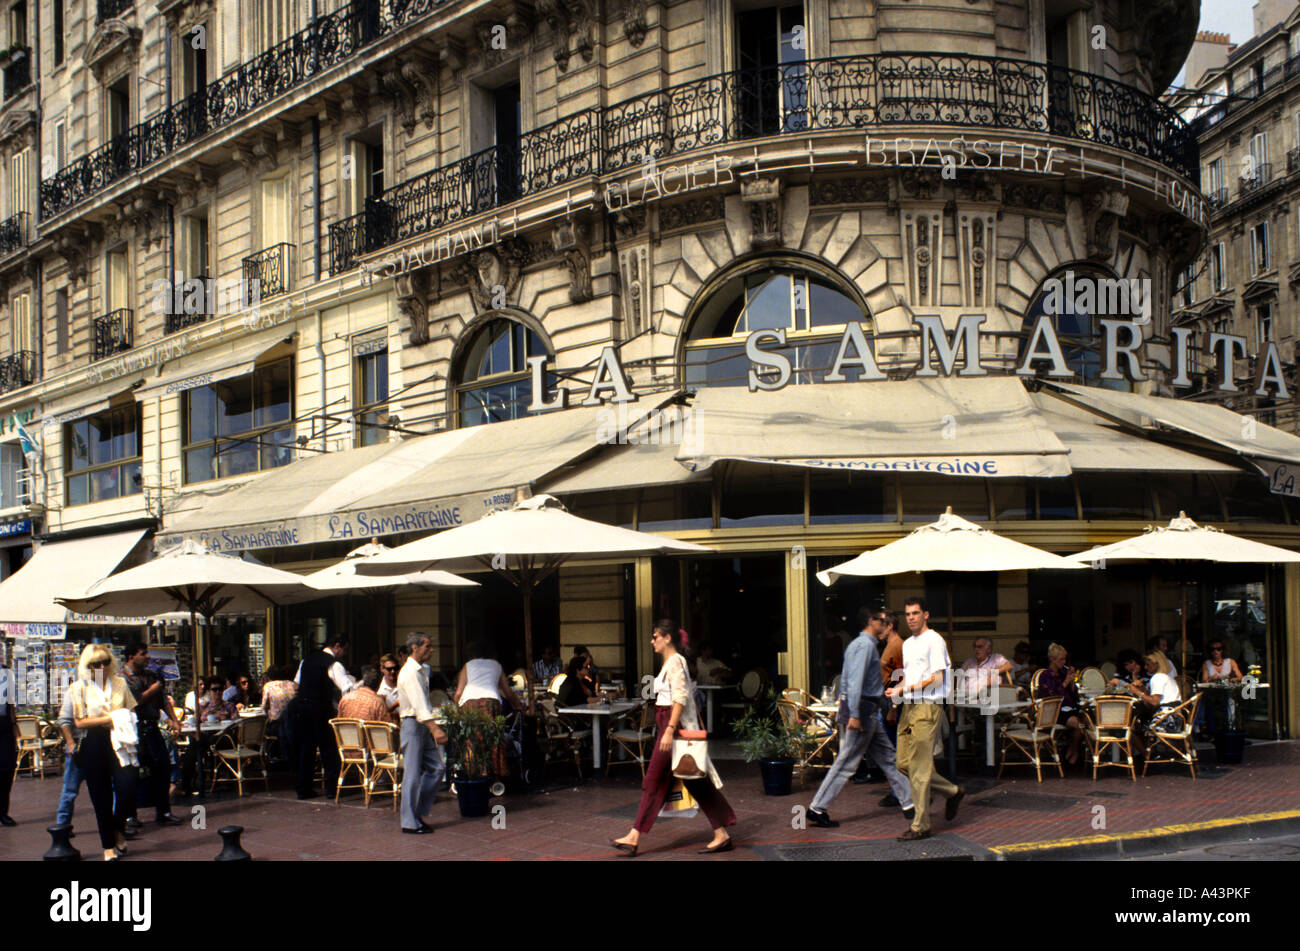 la samaritaine restaurant cafe bar pub marseilles vieux stock photo royalty free